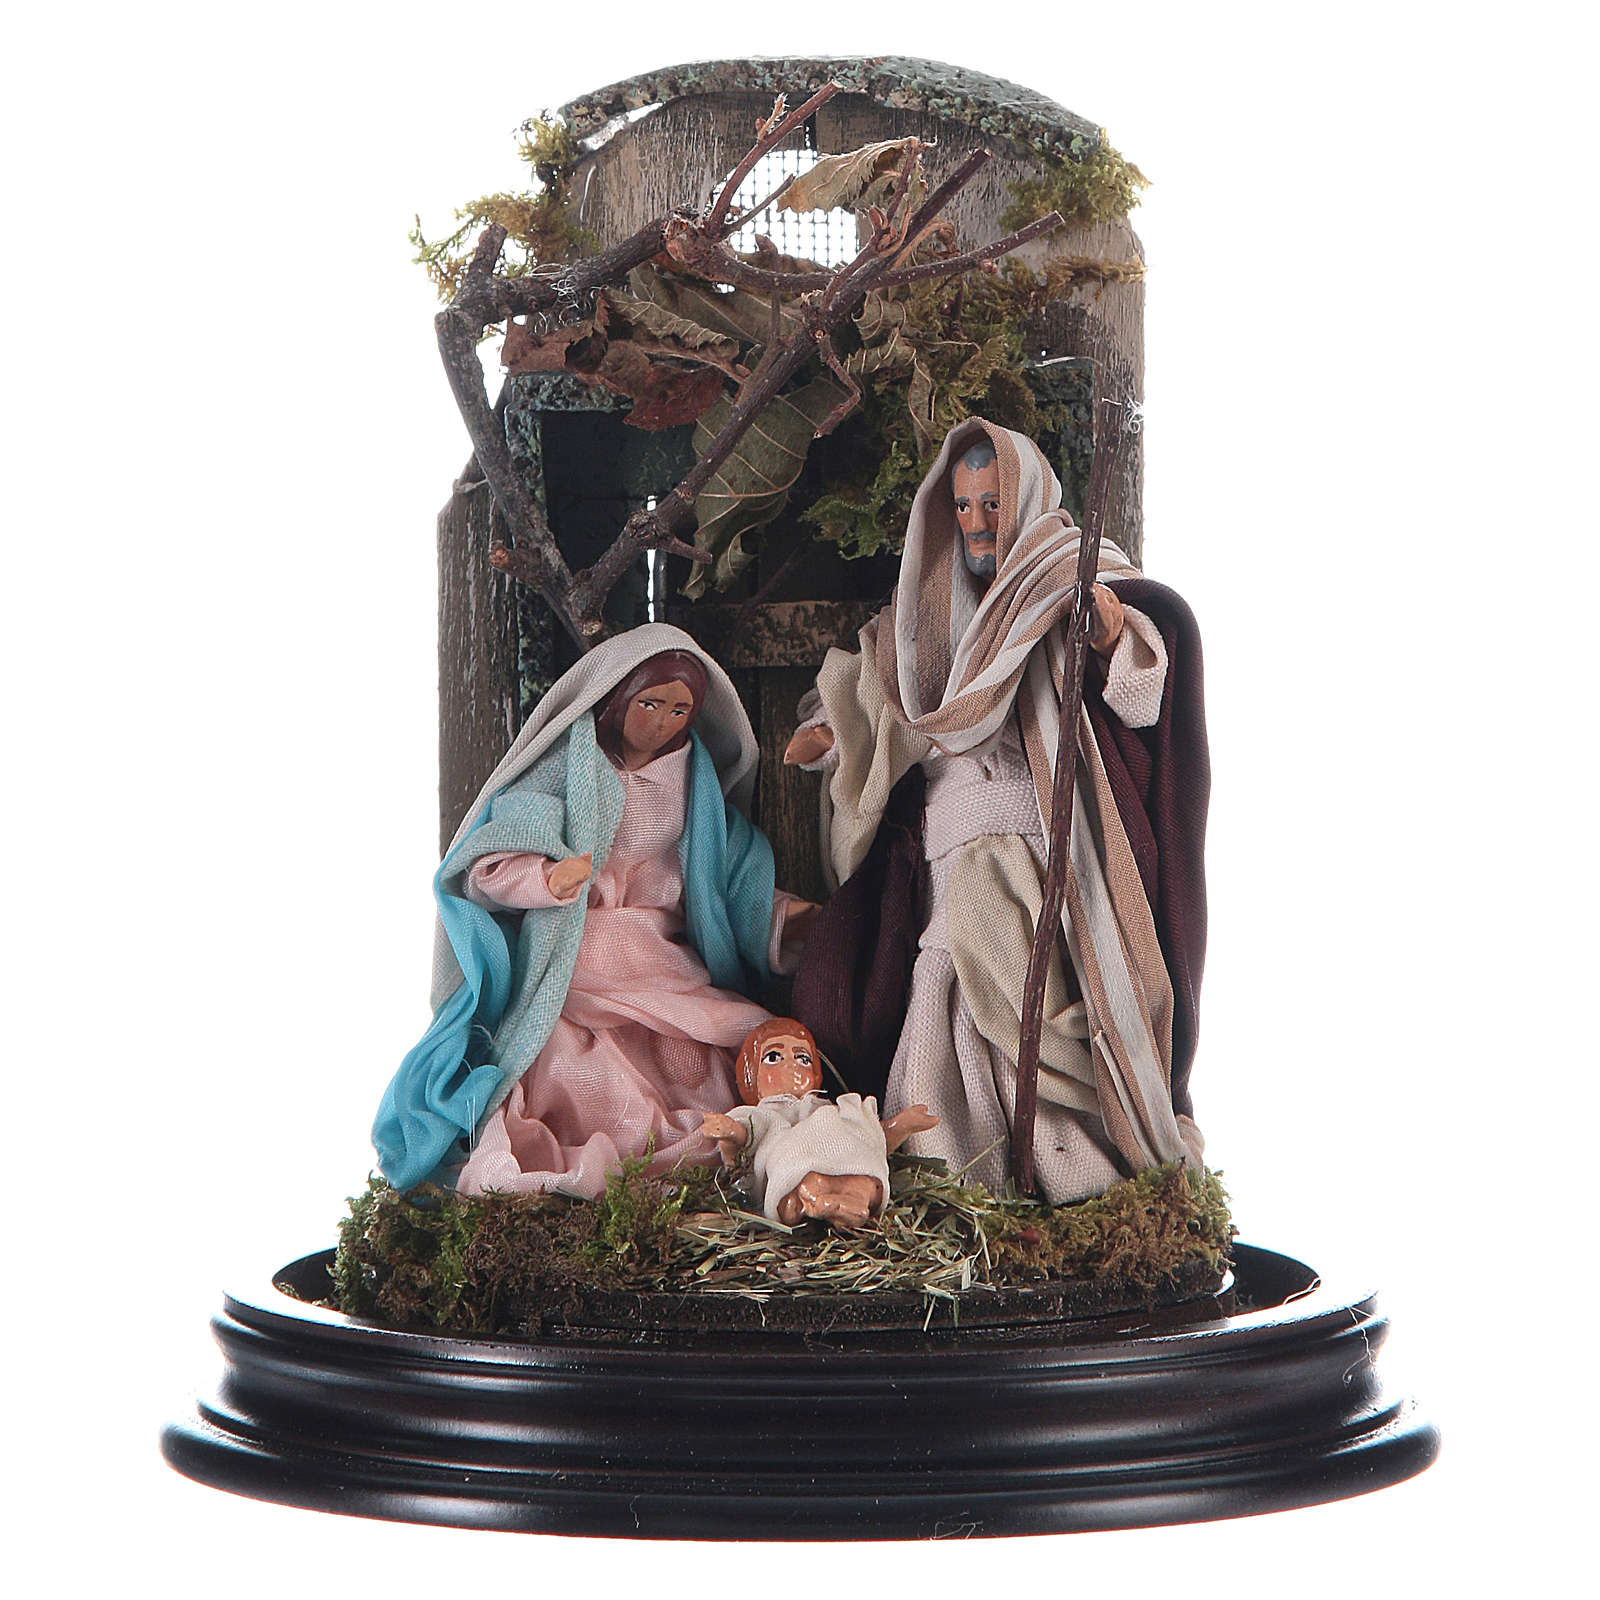 Neapolitan Nativity Scene Holy Family arabian style with setting in glass dome 18.5cm 4